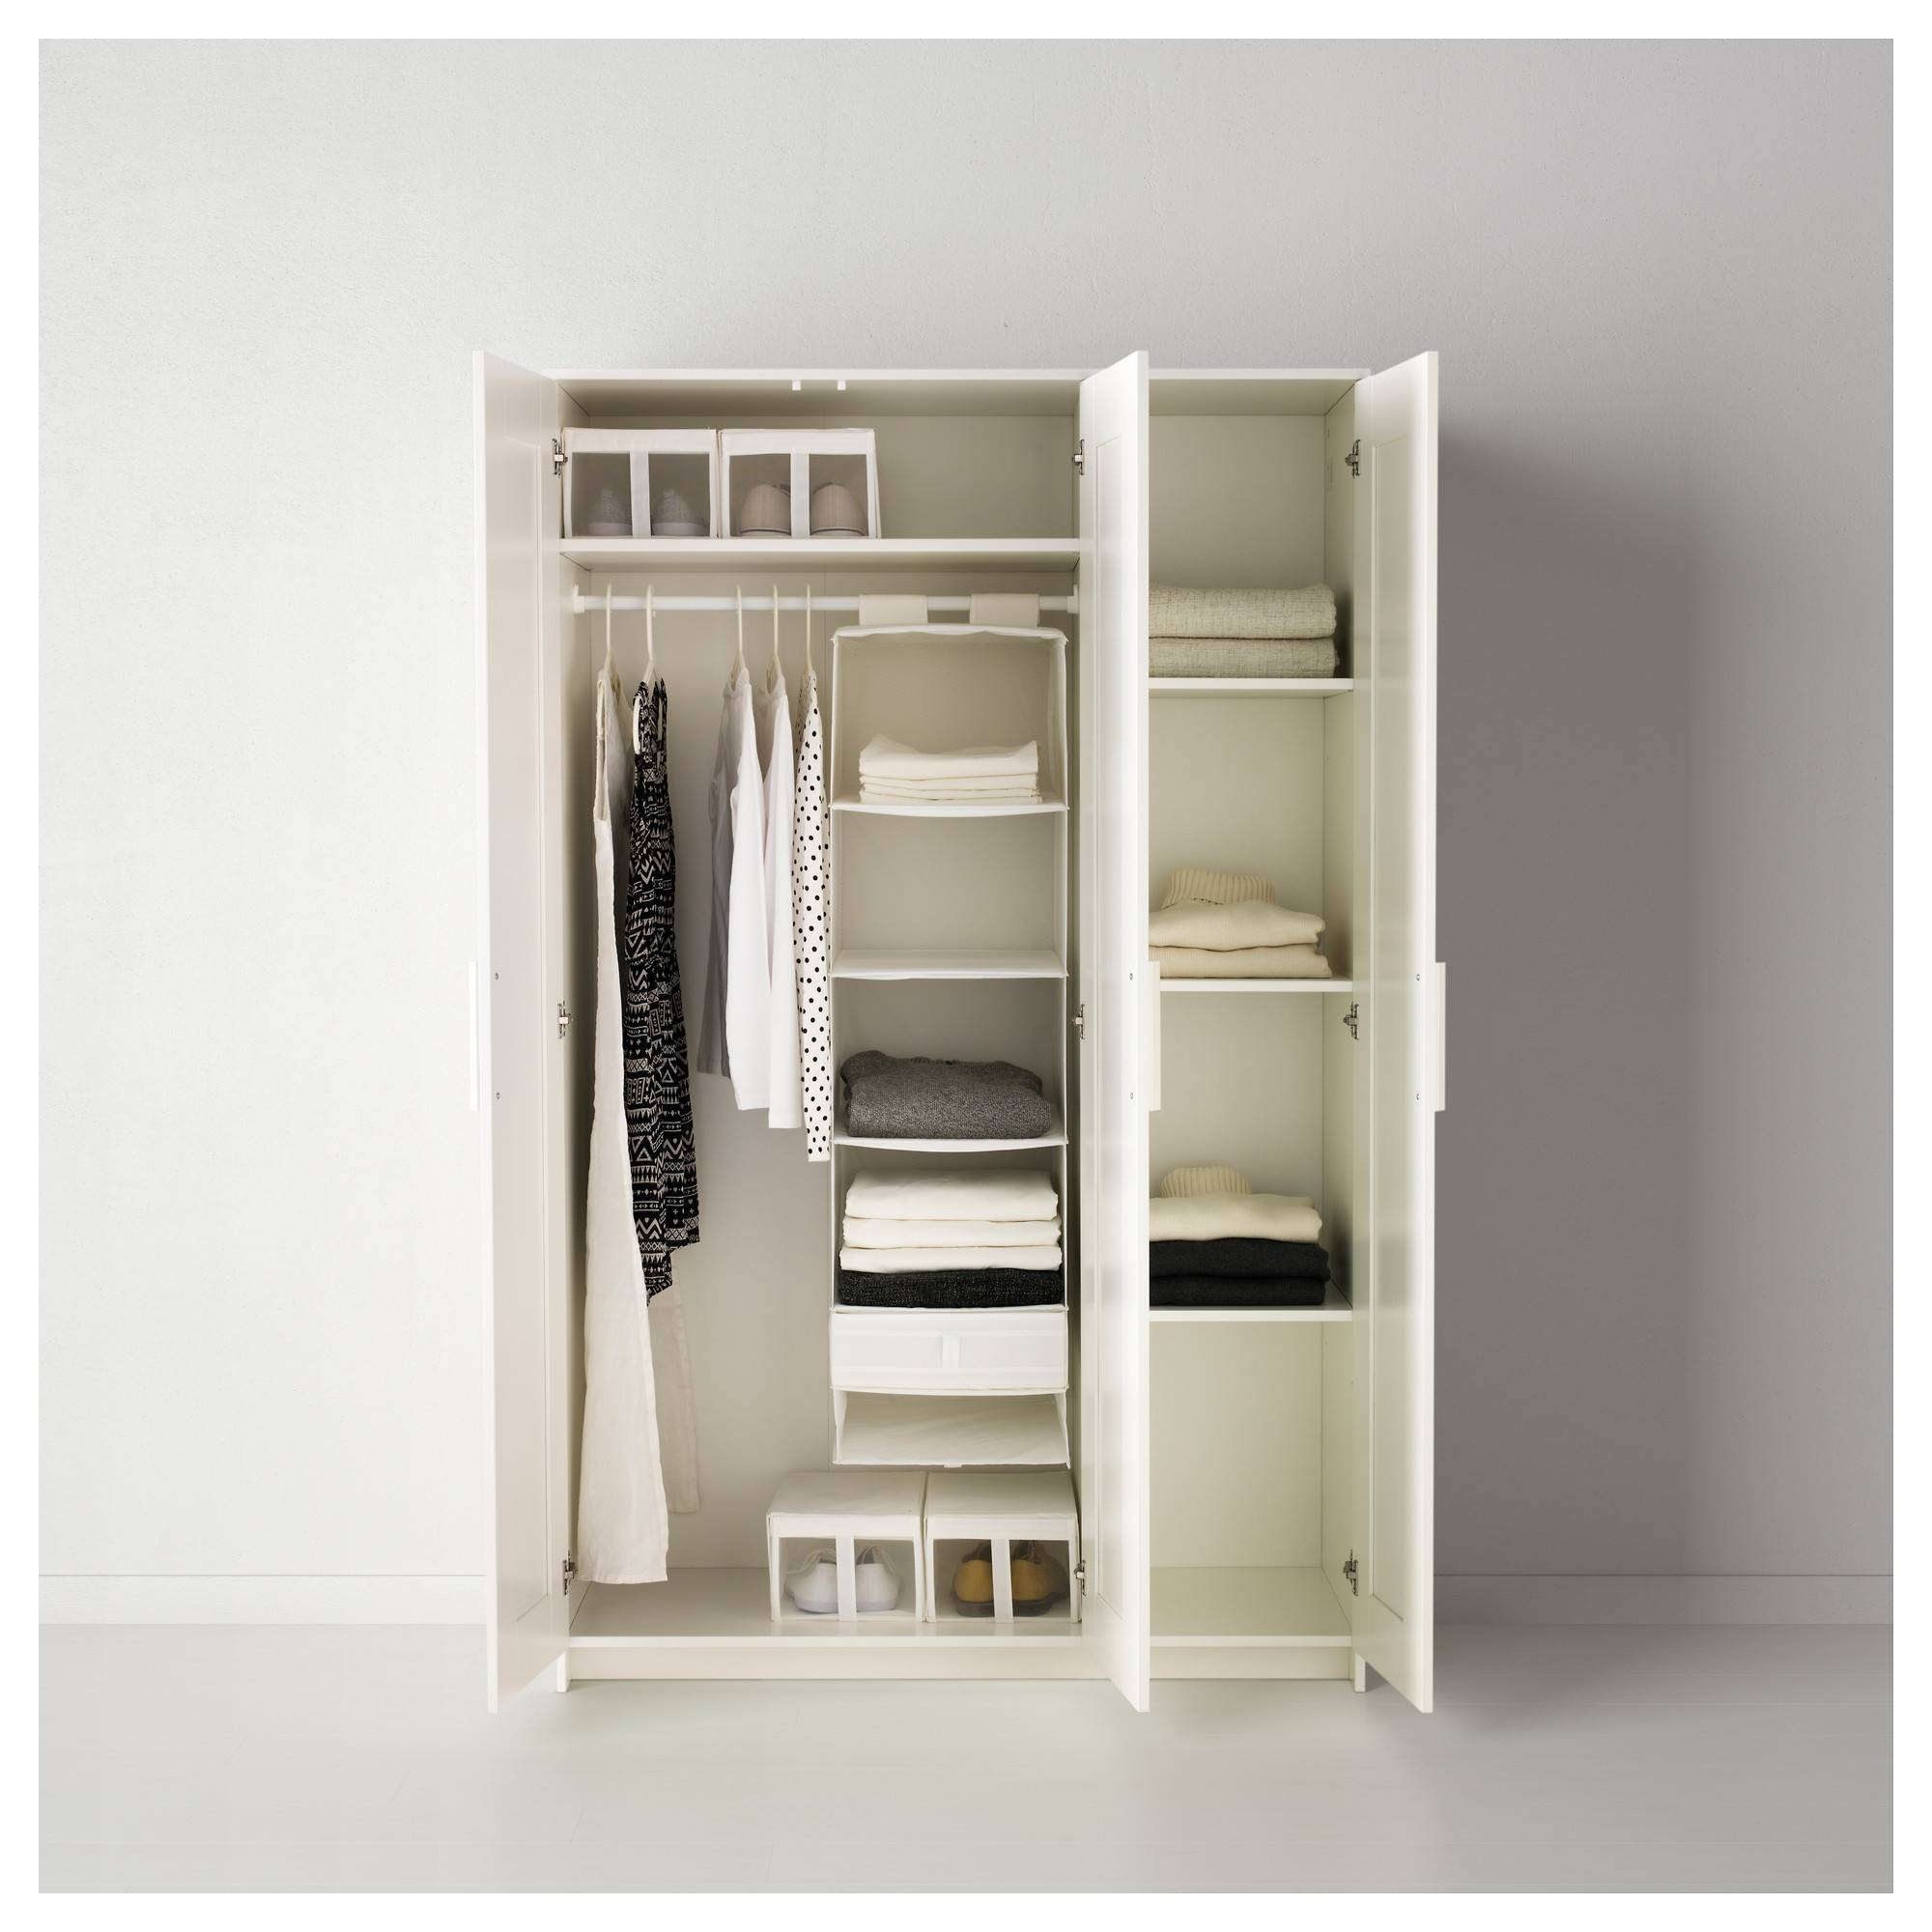 Brimnes Wardrobe With 3 Doors - White - Ikea in Wardrobe With Drawers and Shelves (Image 10 of 30)